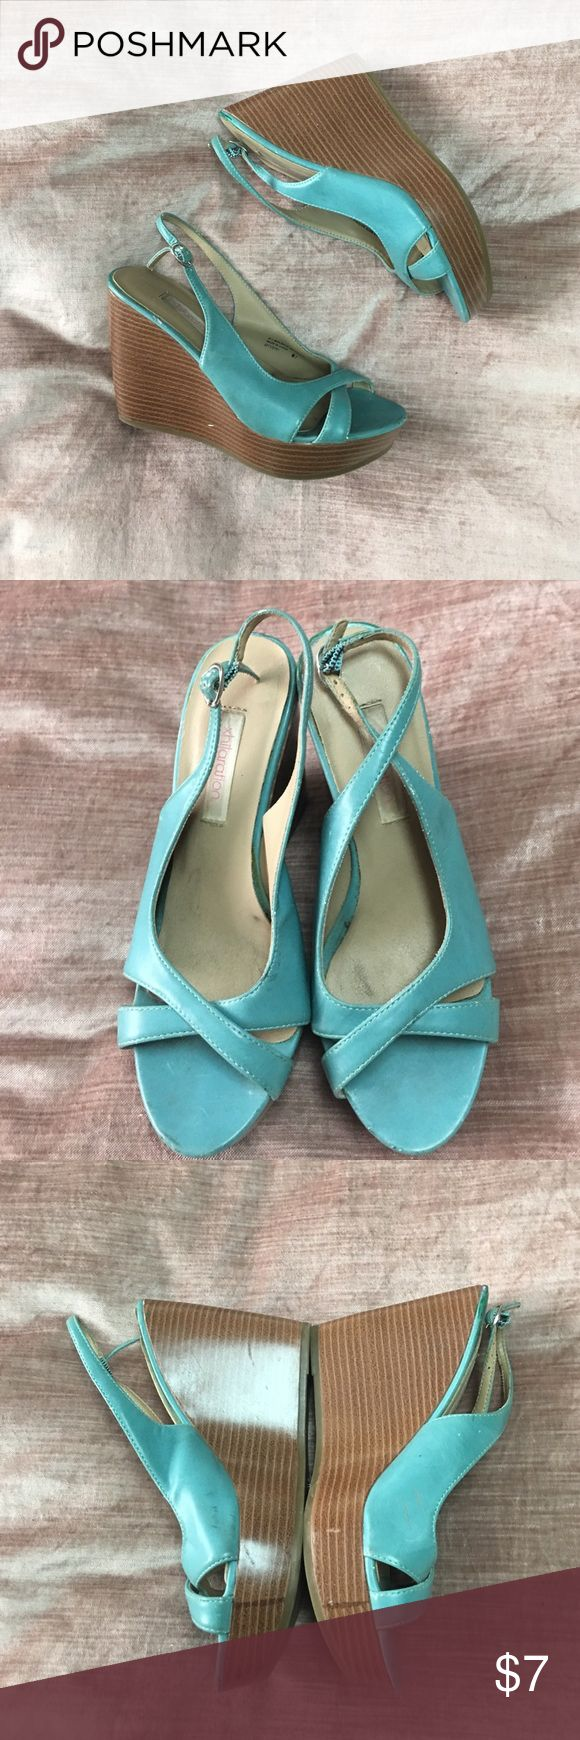 Teal wedges - not in the best condition Teal wedges - not in the best condition. Marks and dings on shoes Xhilaration Shoes Wedges